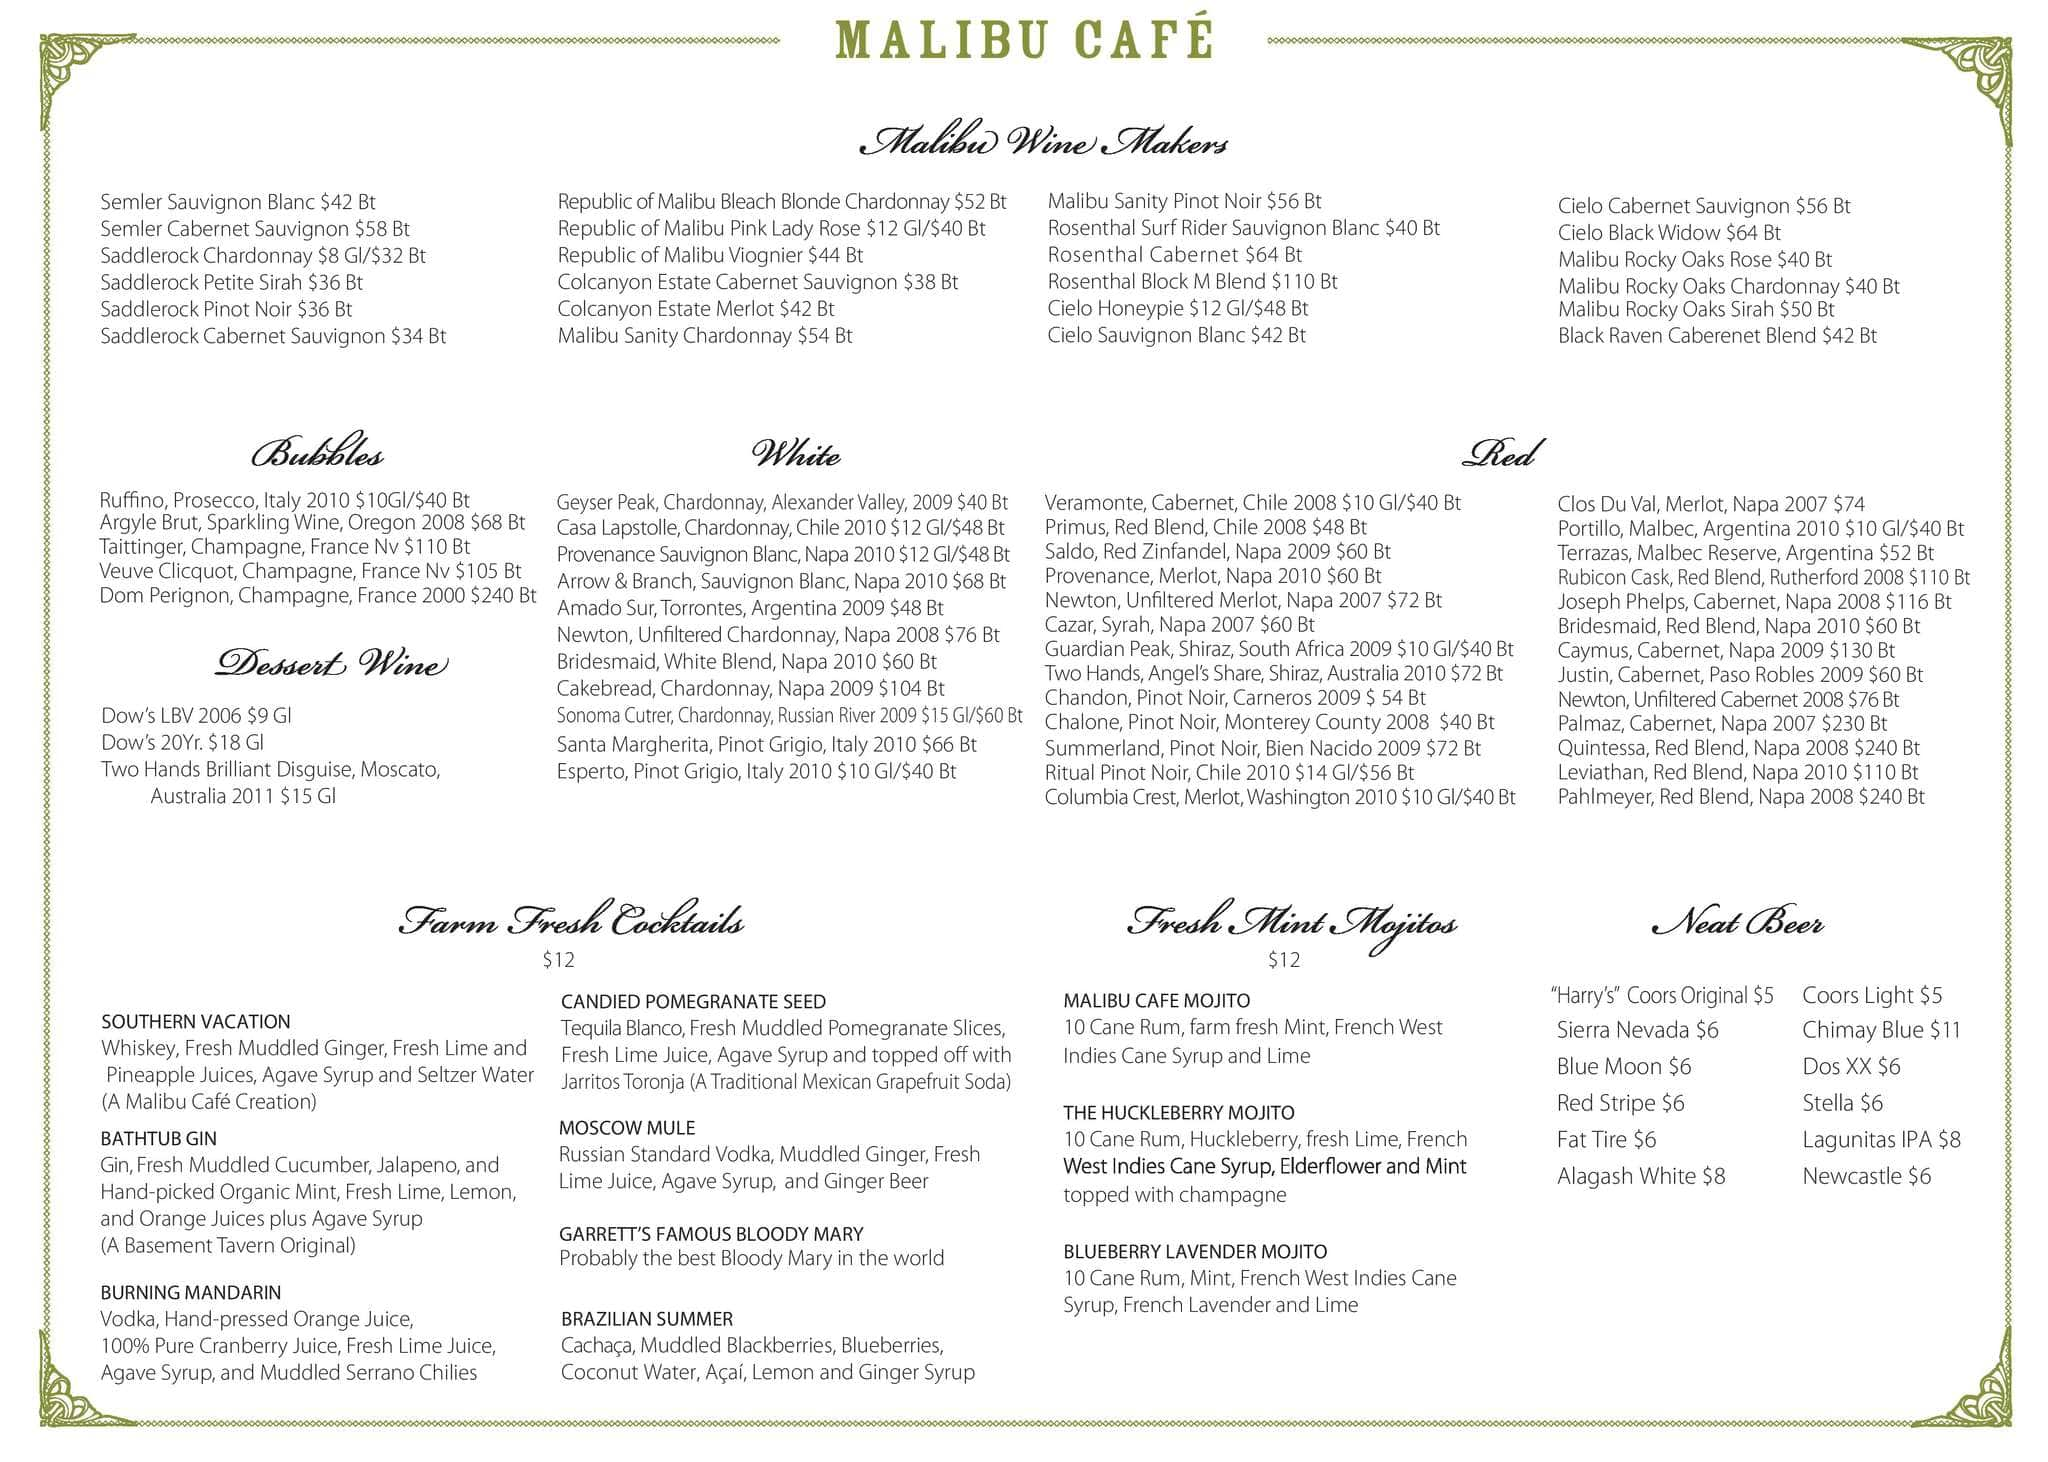 The Malibu Cafe Calamigos Ranch Menu Urbanspoon Zomato